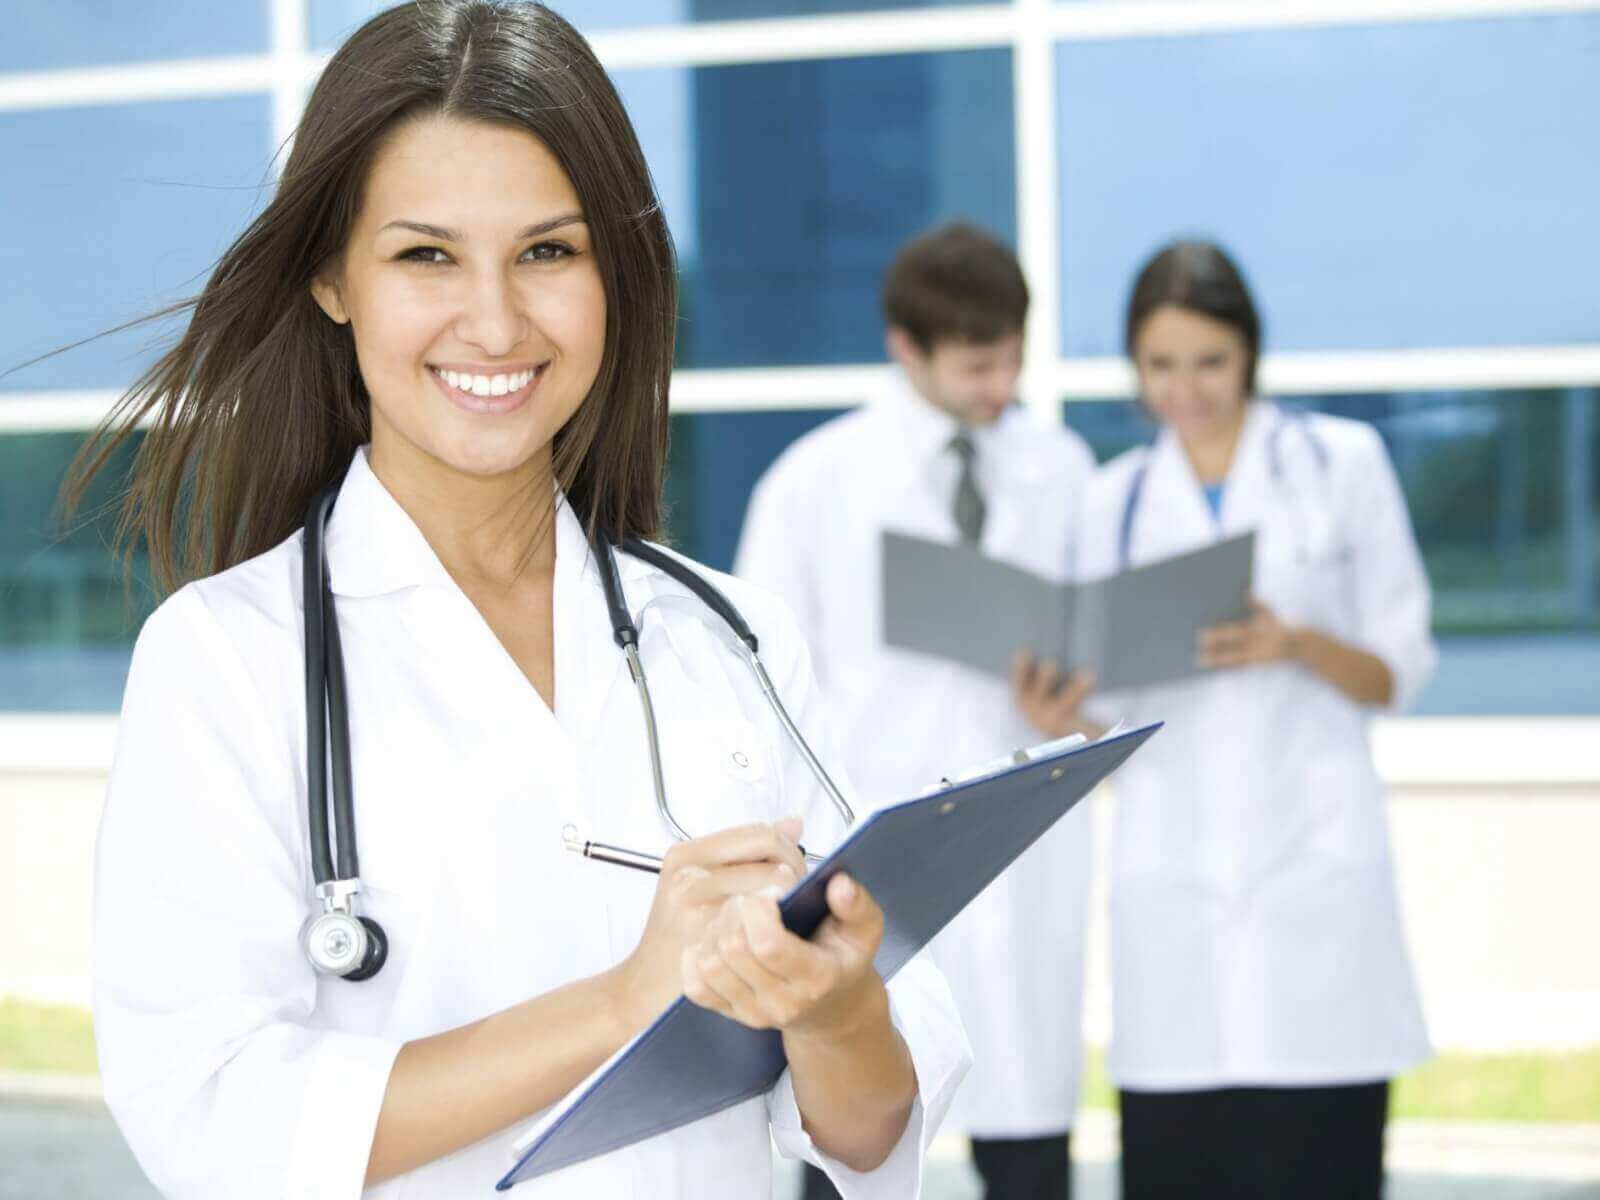 mbbs abroad germany option - HD 1600×1200